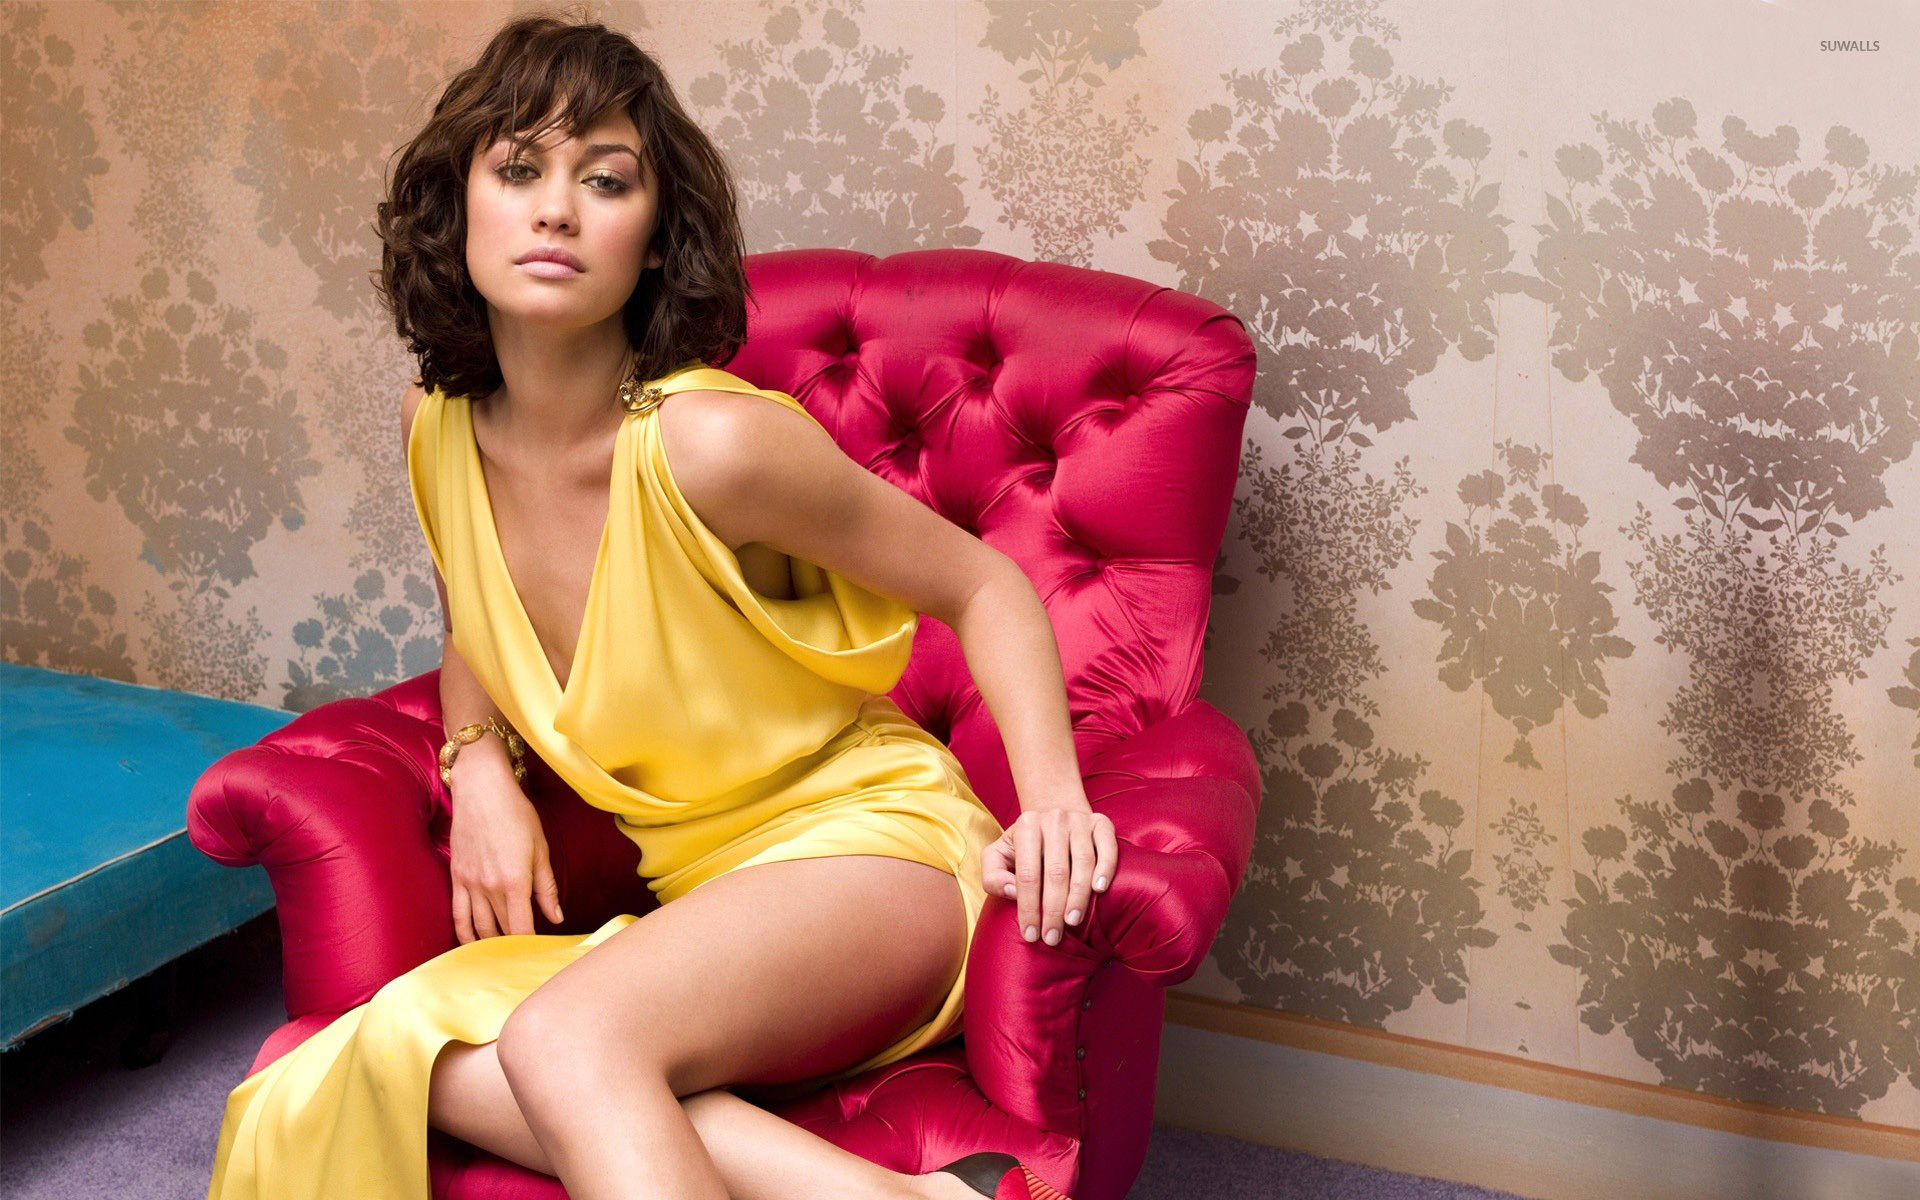 Olga kurylenko magic city - 3 part 8